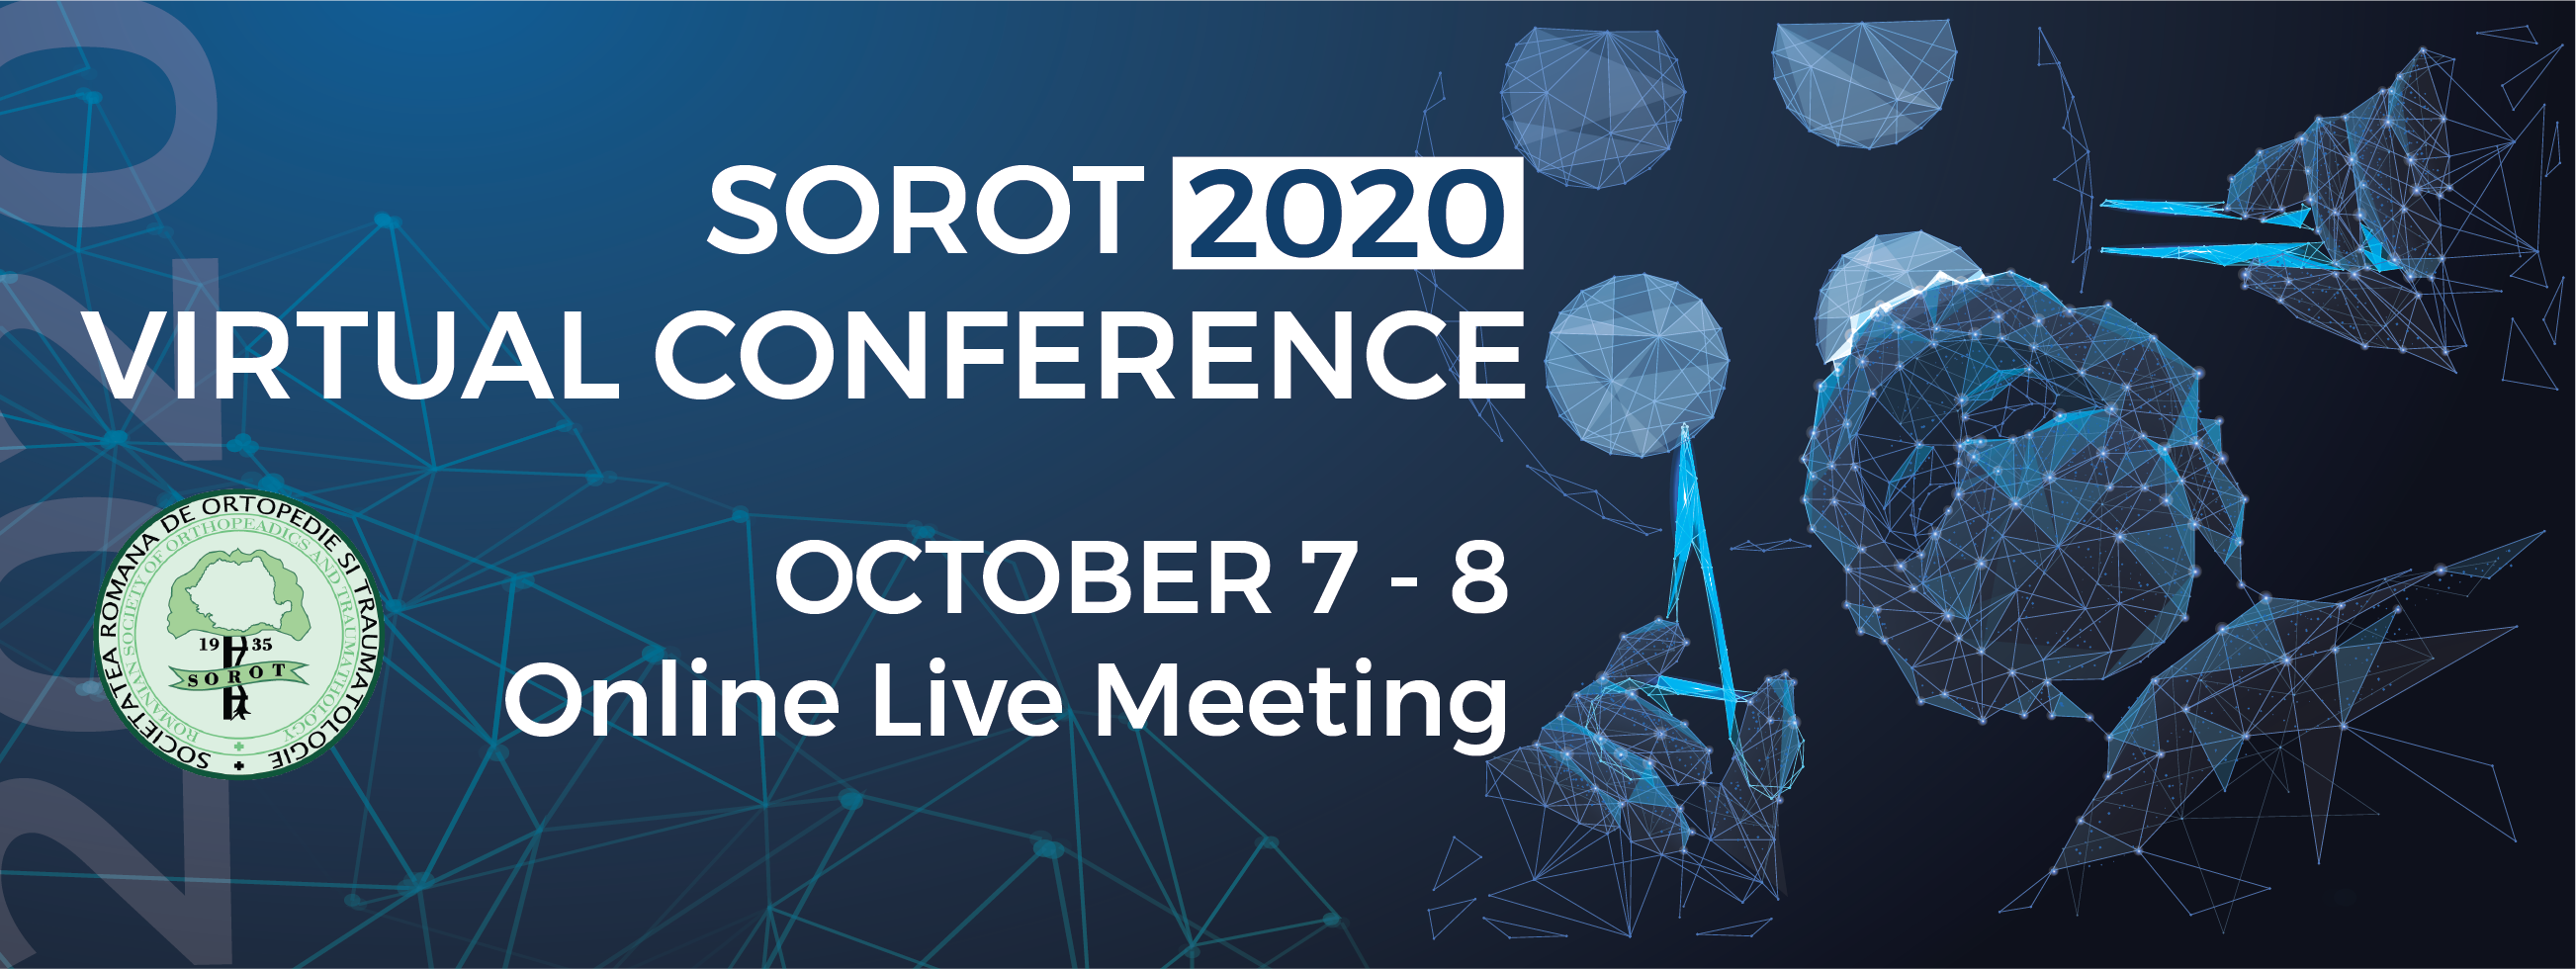 sorot 2020 virtual conference banner